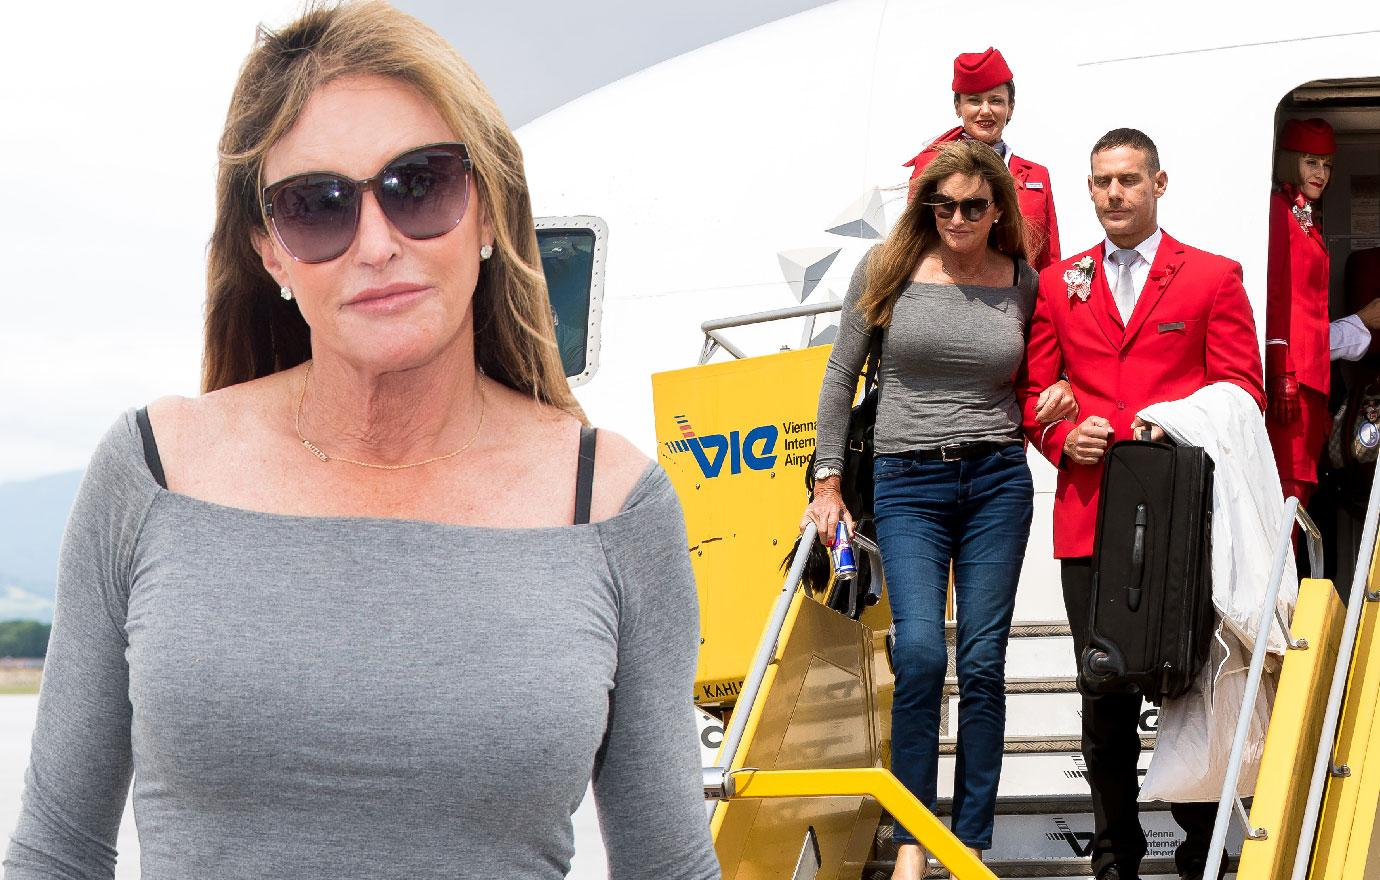 //caitlyn jenner attends austria for life ball instead of brodys wedding pp